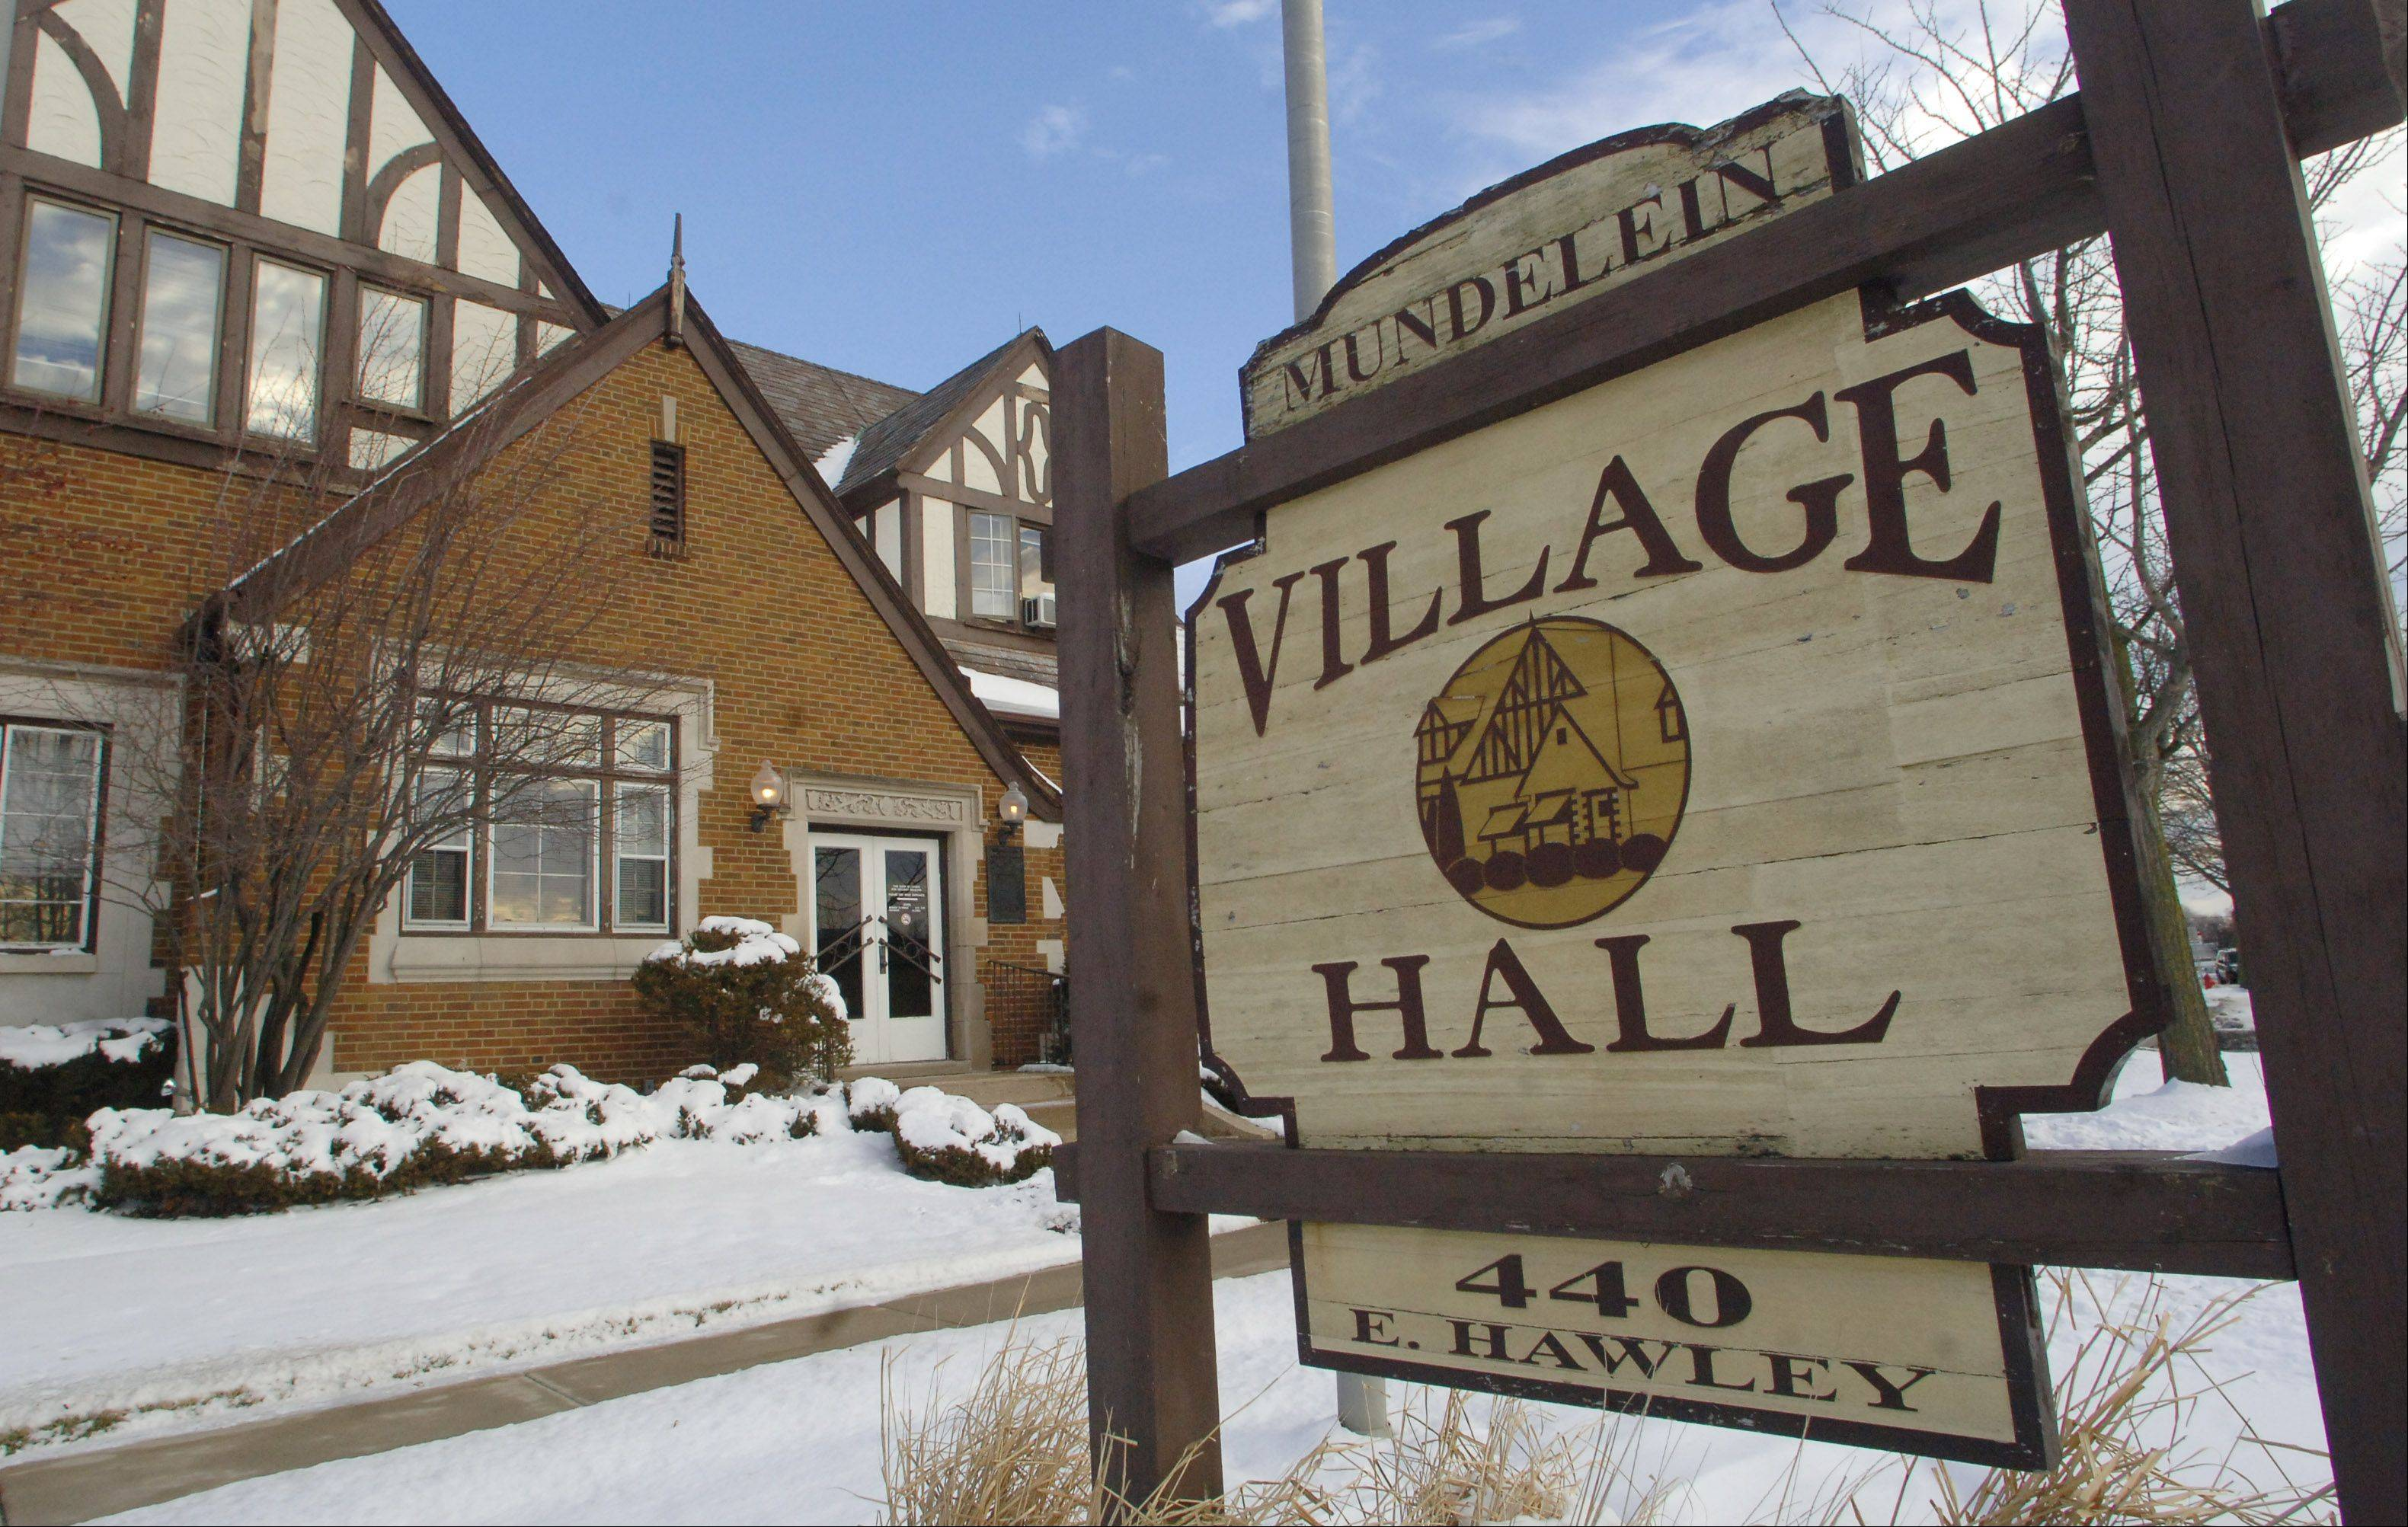 Mundelein's new budget includes millions for village hall construction